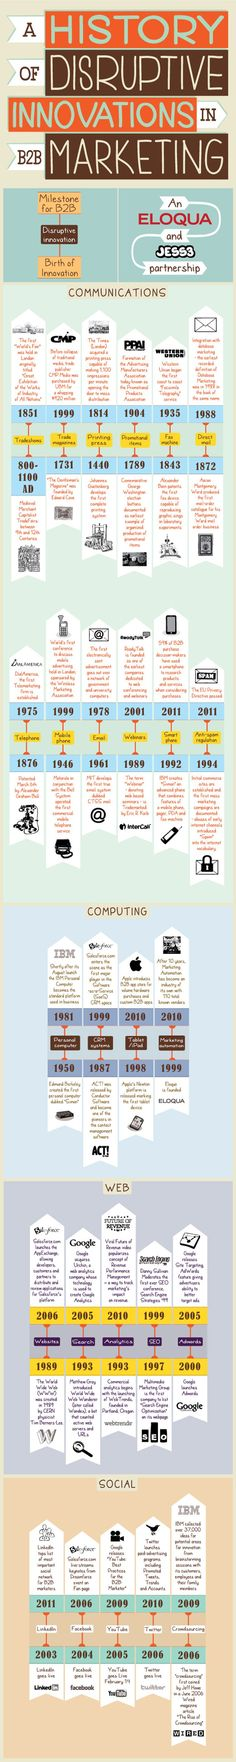 This infographic, created by Eloqua and visualizes a timeline of disruptions in the history of marketing. It explores the birth of innovation from Guerilla Marketing, Marketing Digital, Marketing And Advertising, Business Marketing, Internet Marketing, Inbound Marketing, Social Media Marketing, Online Marketing, Content Marketing